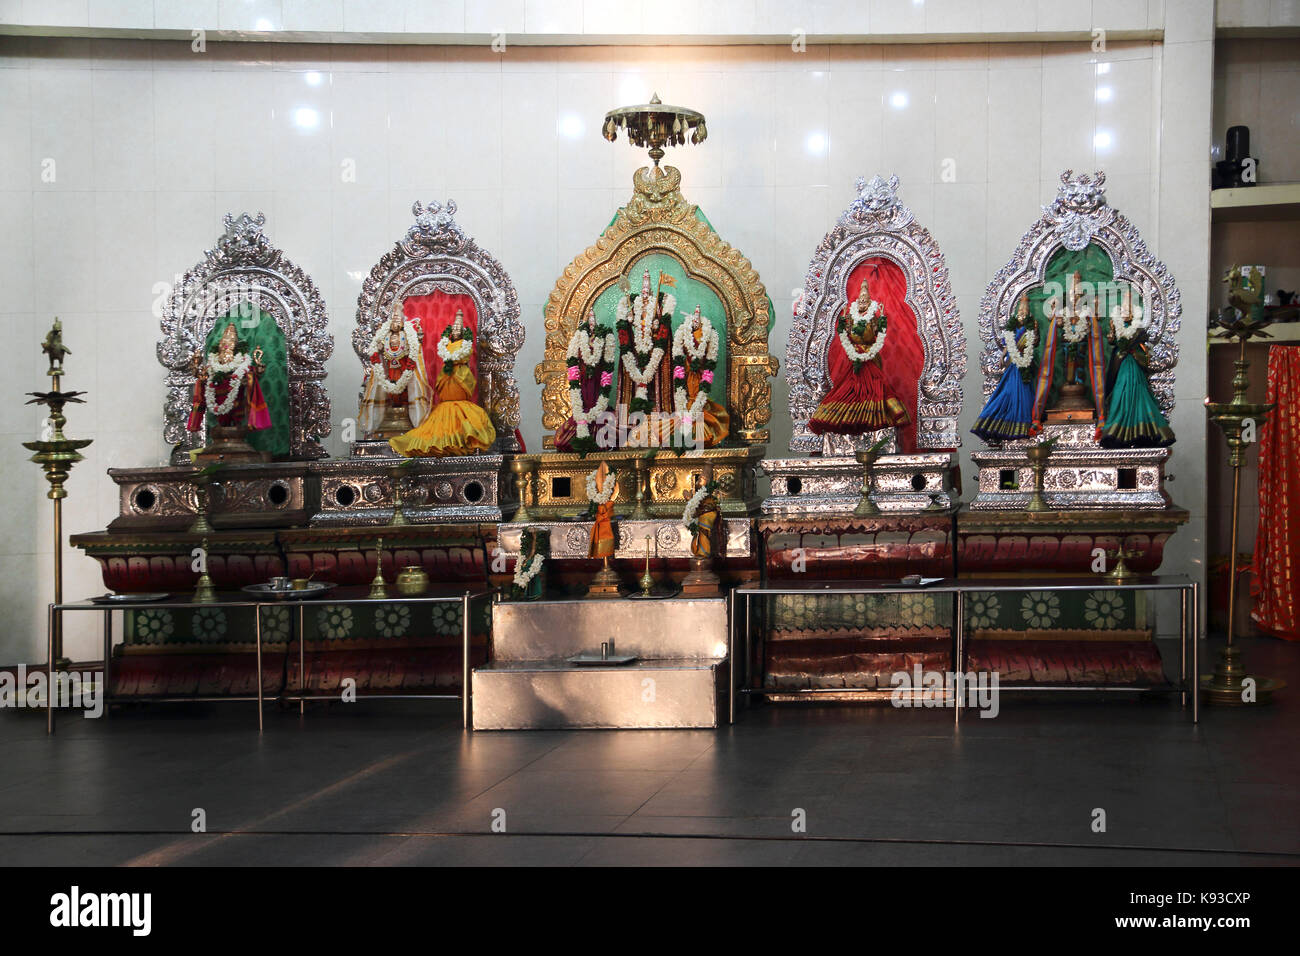 Pettah Colombo Sri Lanka New Kathiresan Kovil Temple Dedicated To War God Murugan Statue Of Hindu Gods - Stock Image